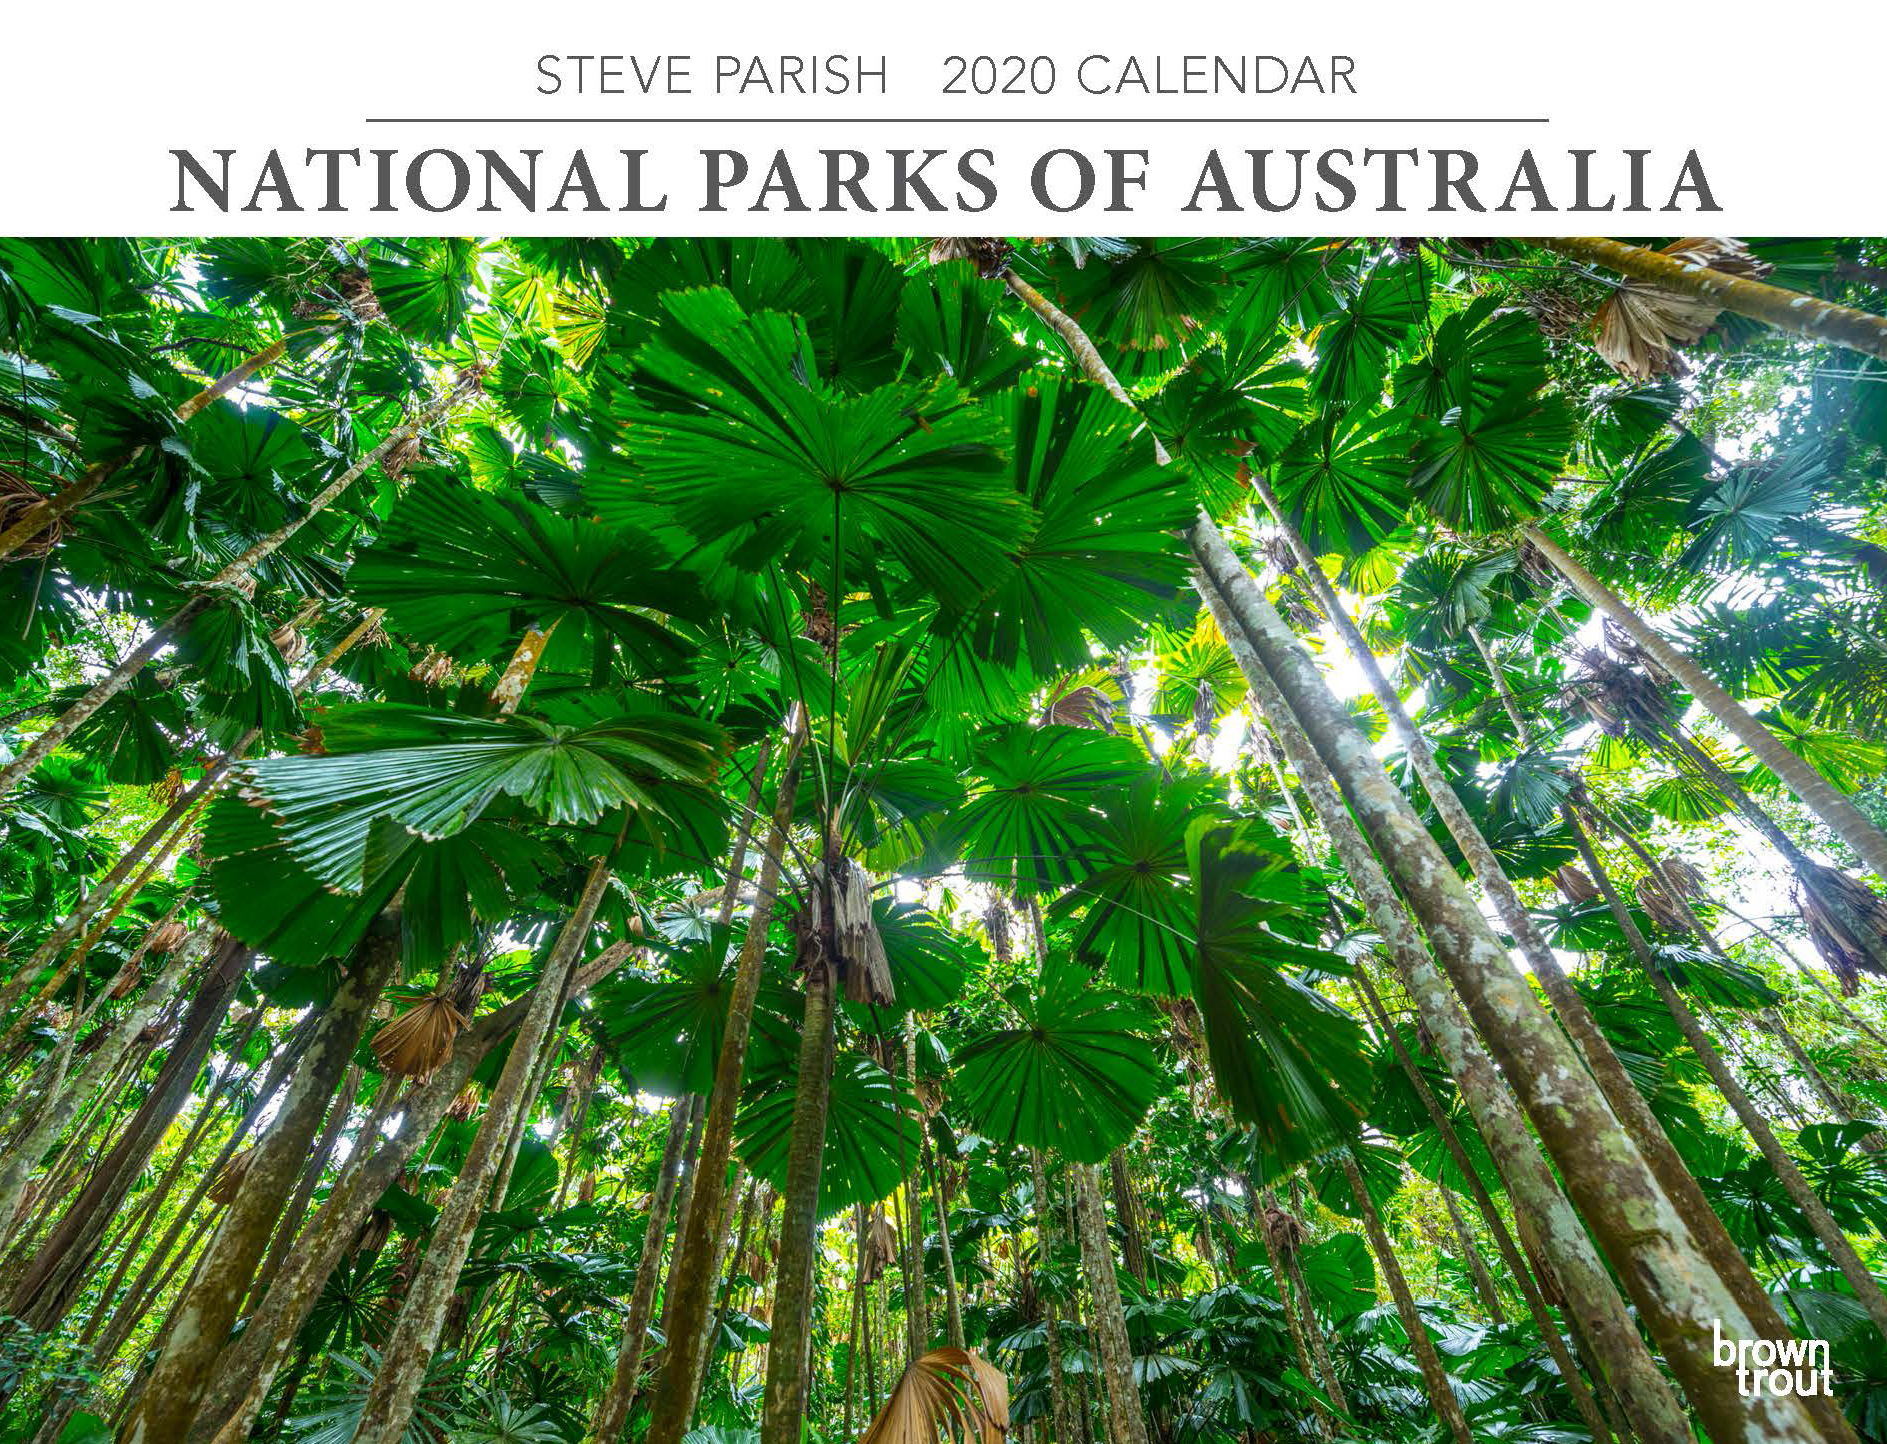 National Parks of Australia 2020 Horizontal